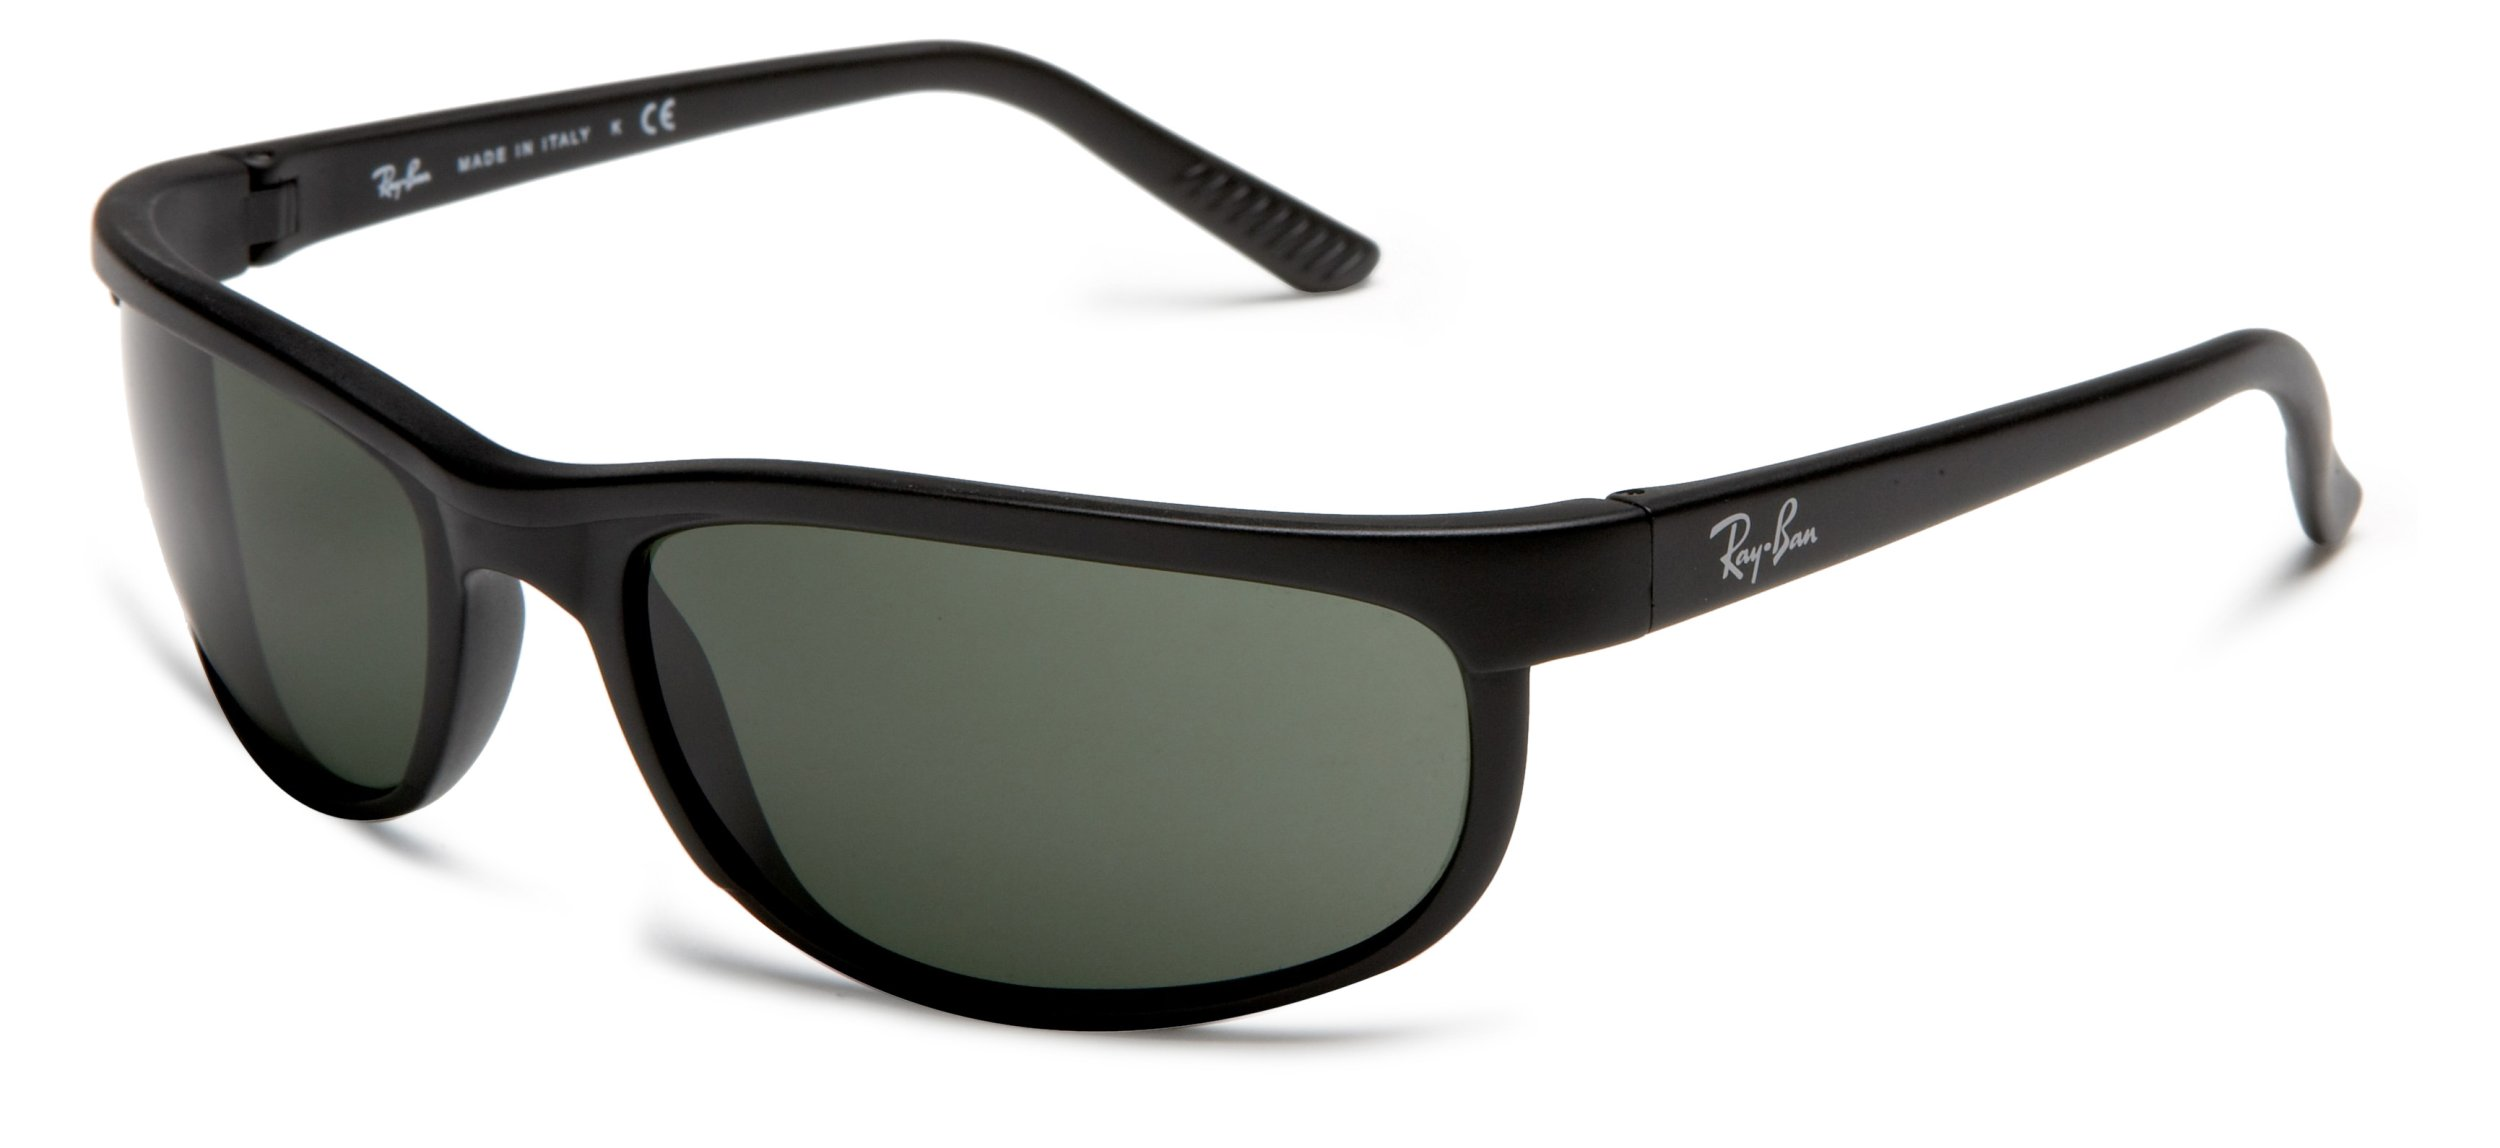 Ray-Ban PREDATOR 2 - BLACK/ MATTE BLACK Frame CRYSTAL GREEN Lenses 62mm Non-Polarized by Ray-Ban